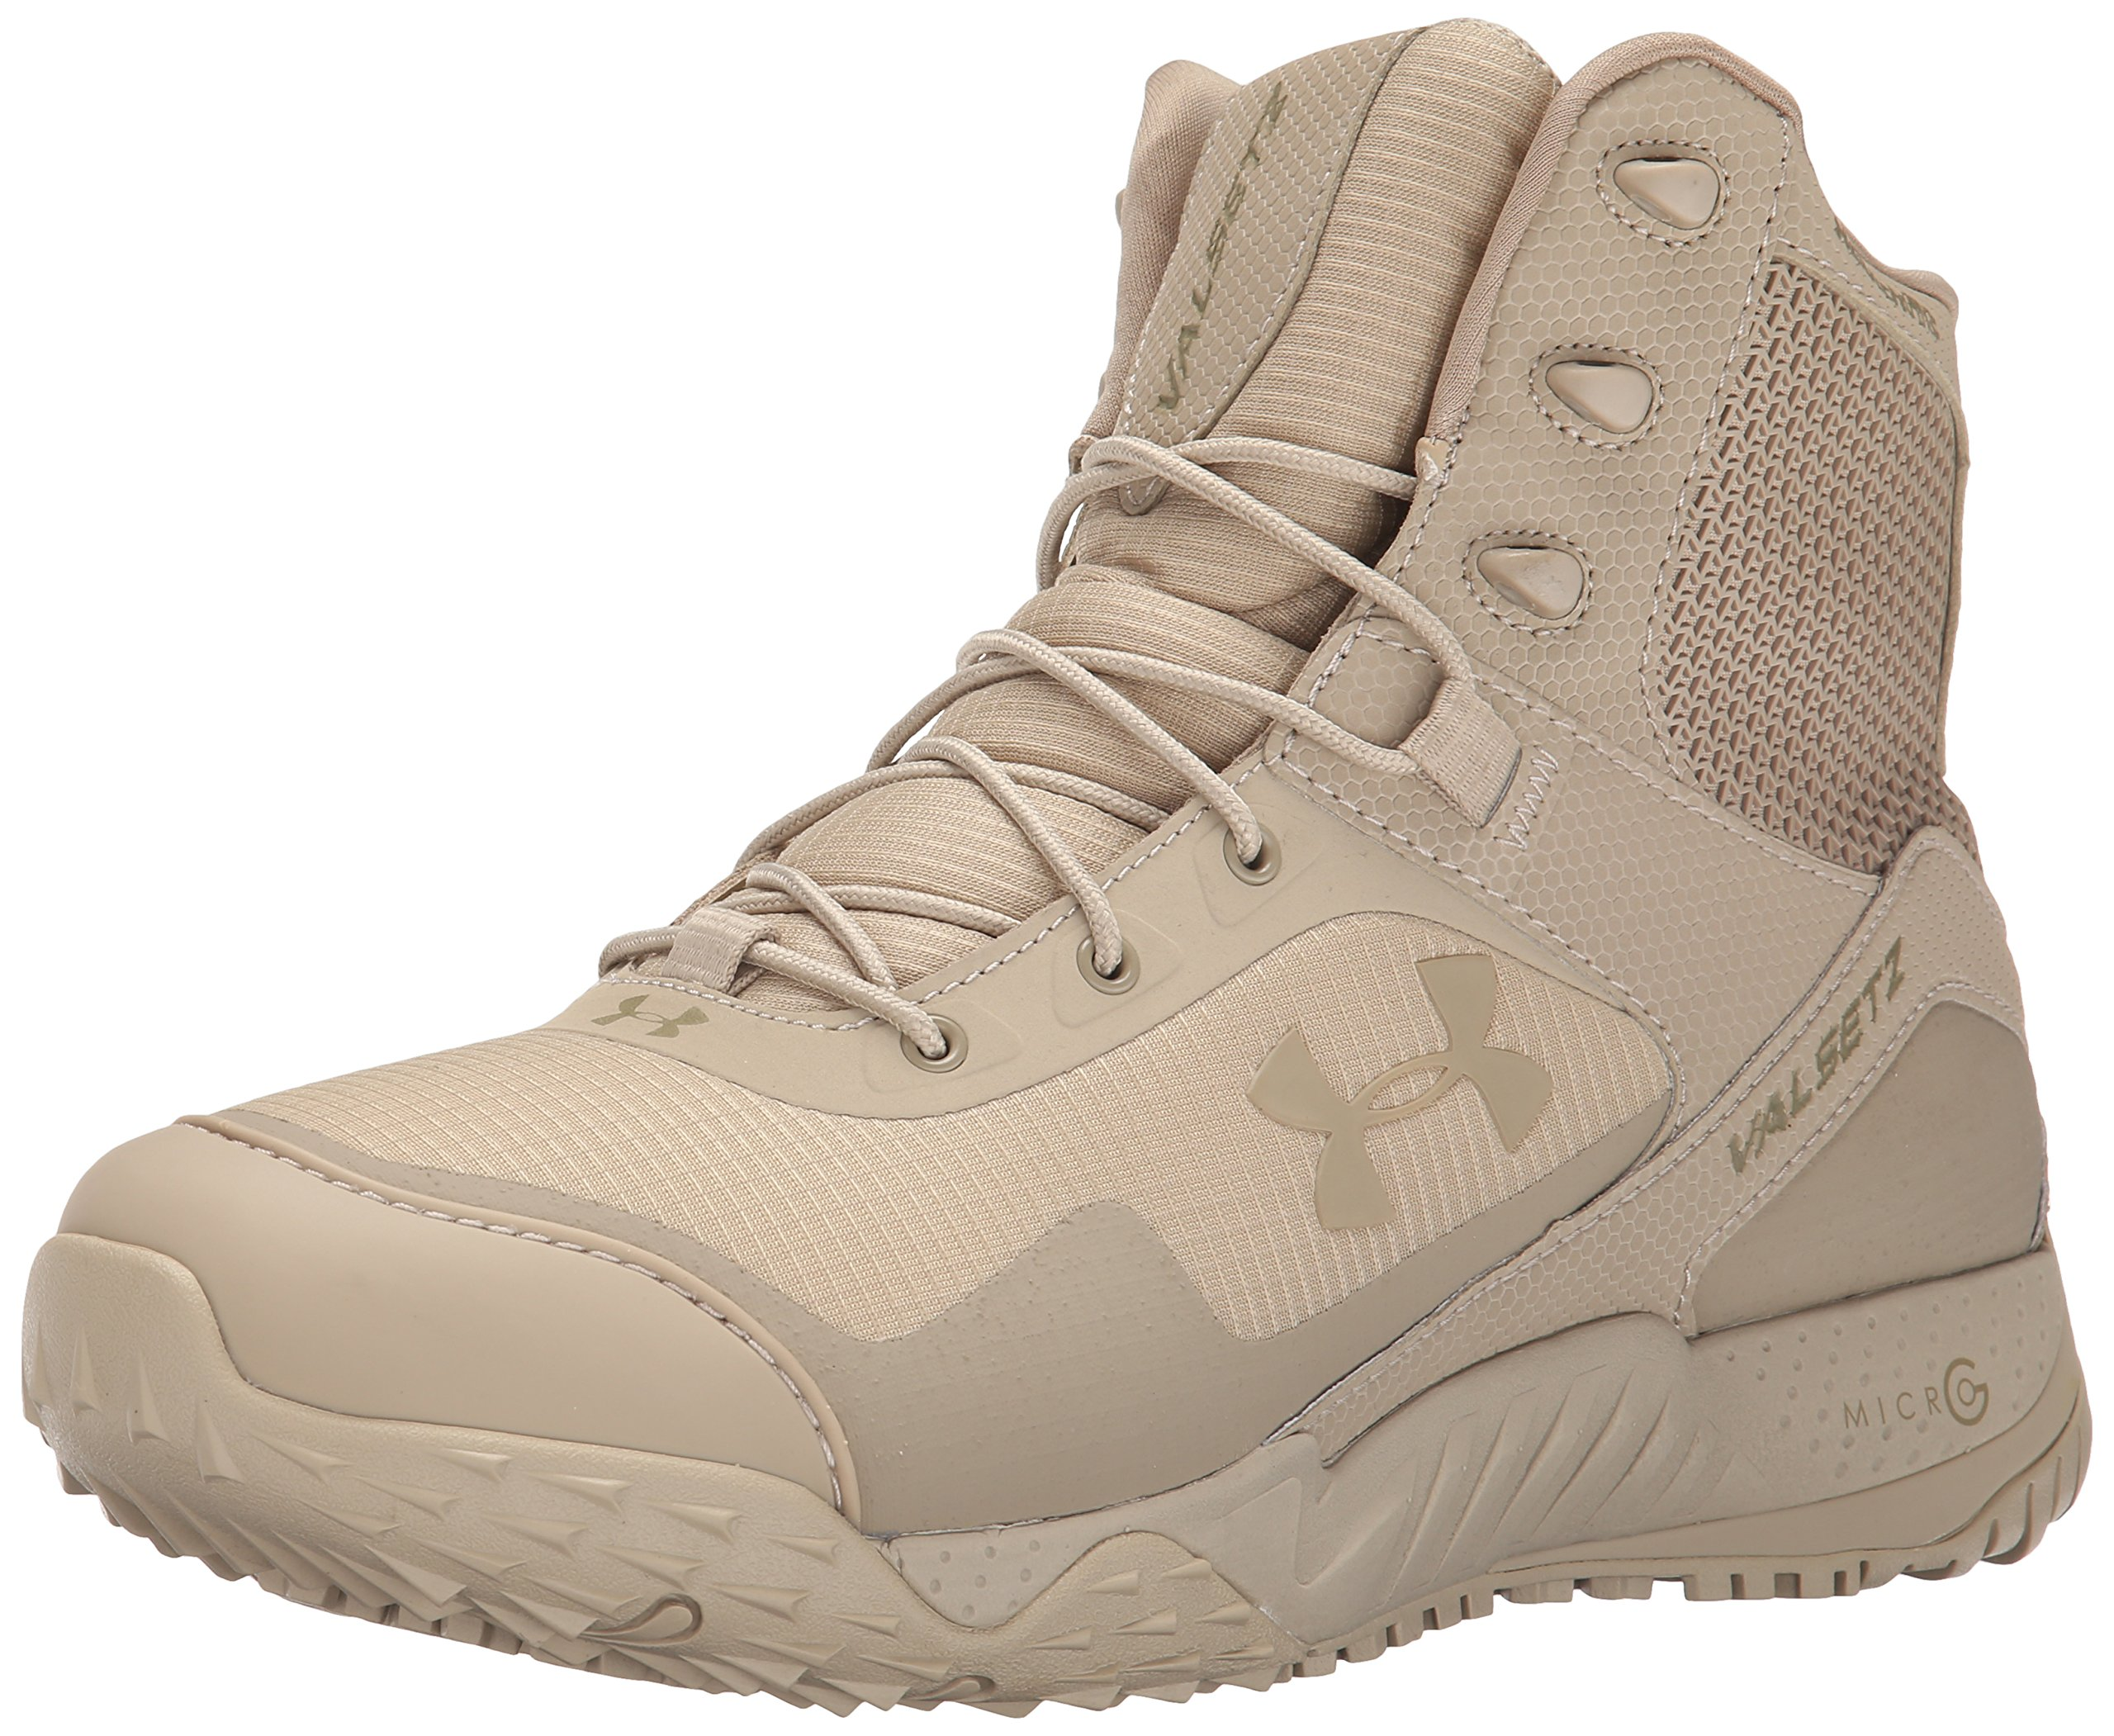 Under Armour Men's Valsetz RTS Military and Tactical Boot 290/Desert Sand, 8